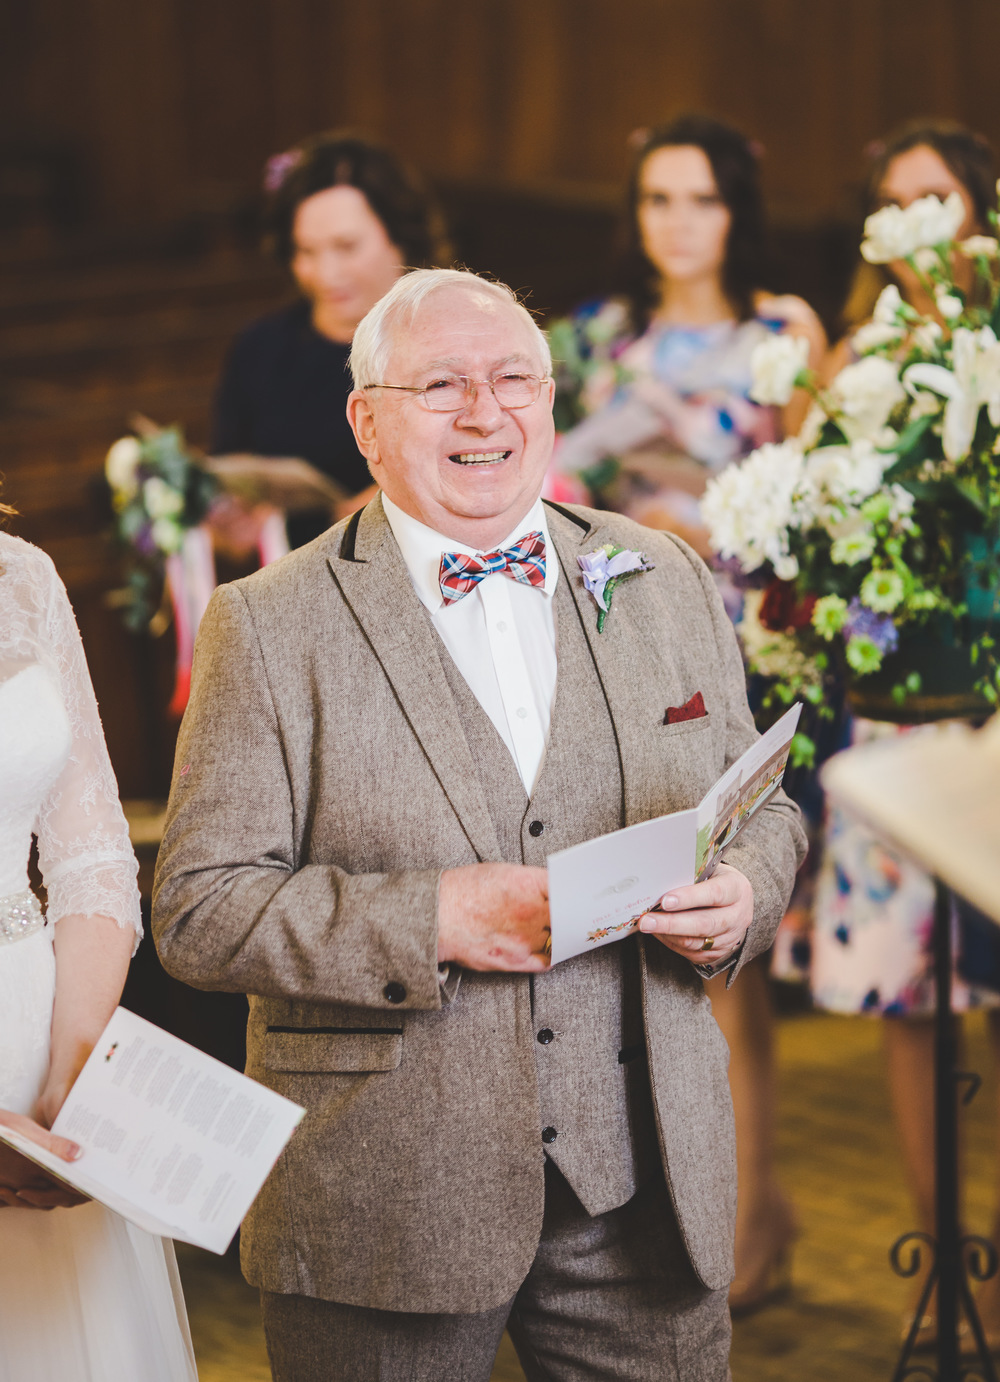 Big smiles from the father of the Cheshire bride.